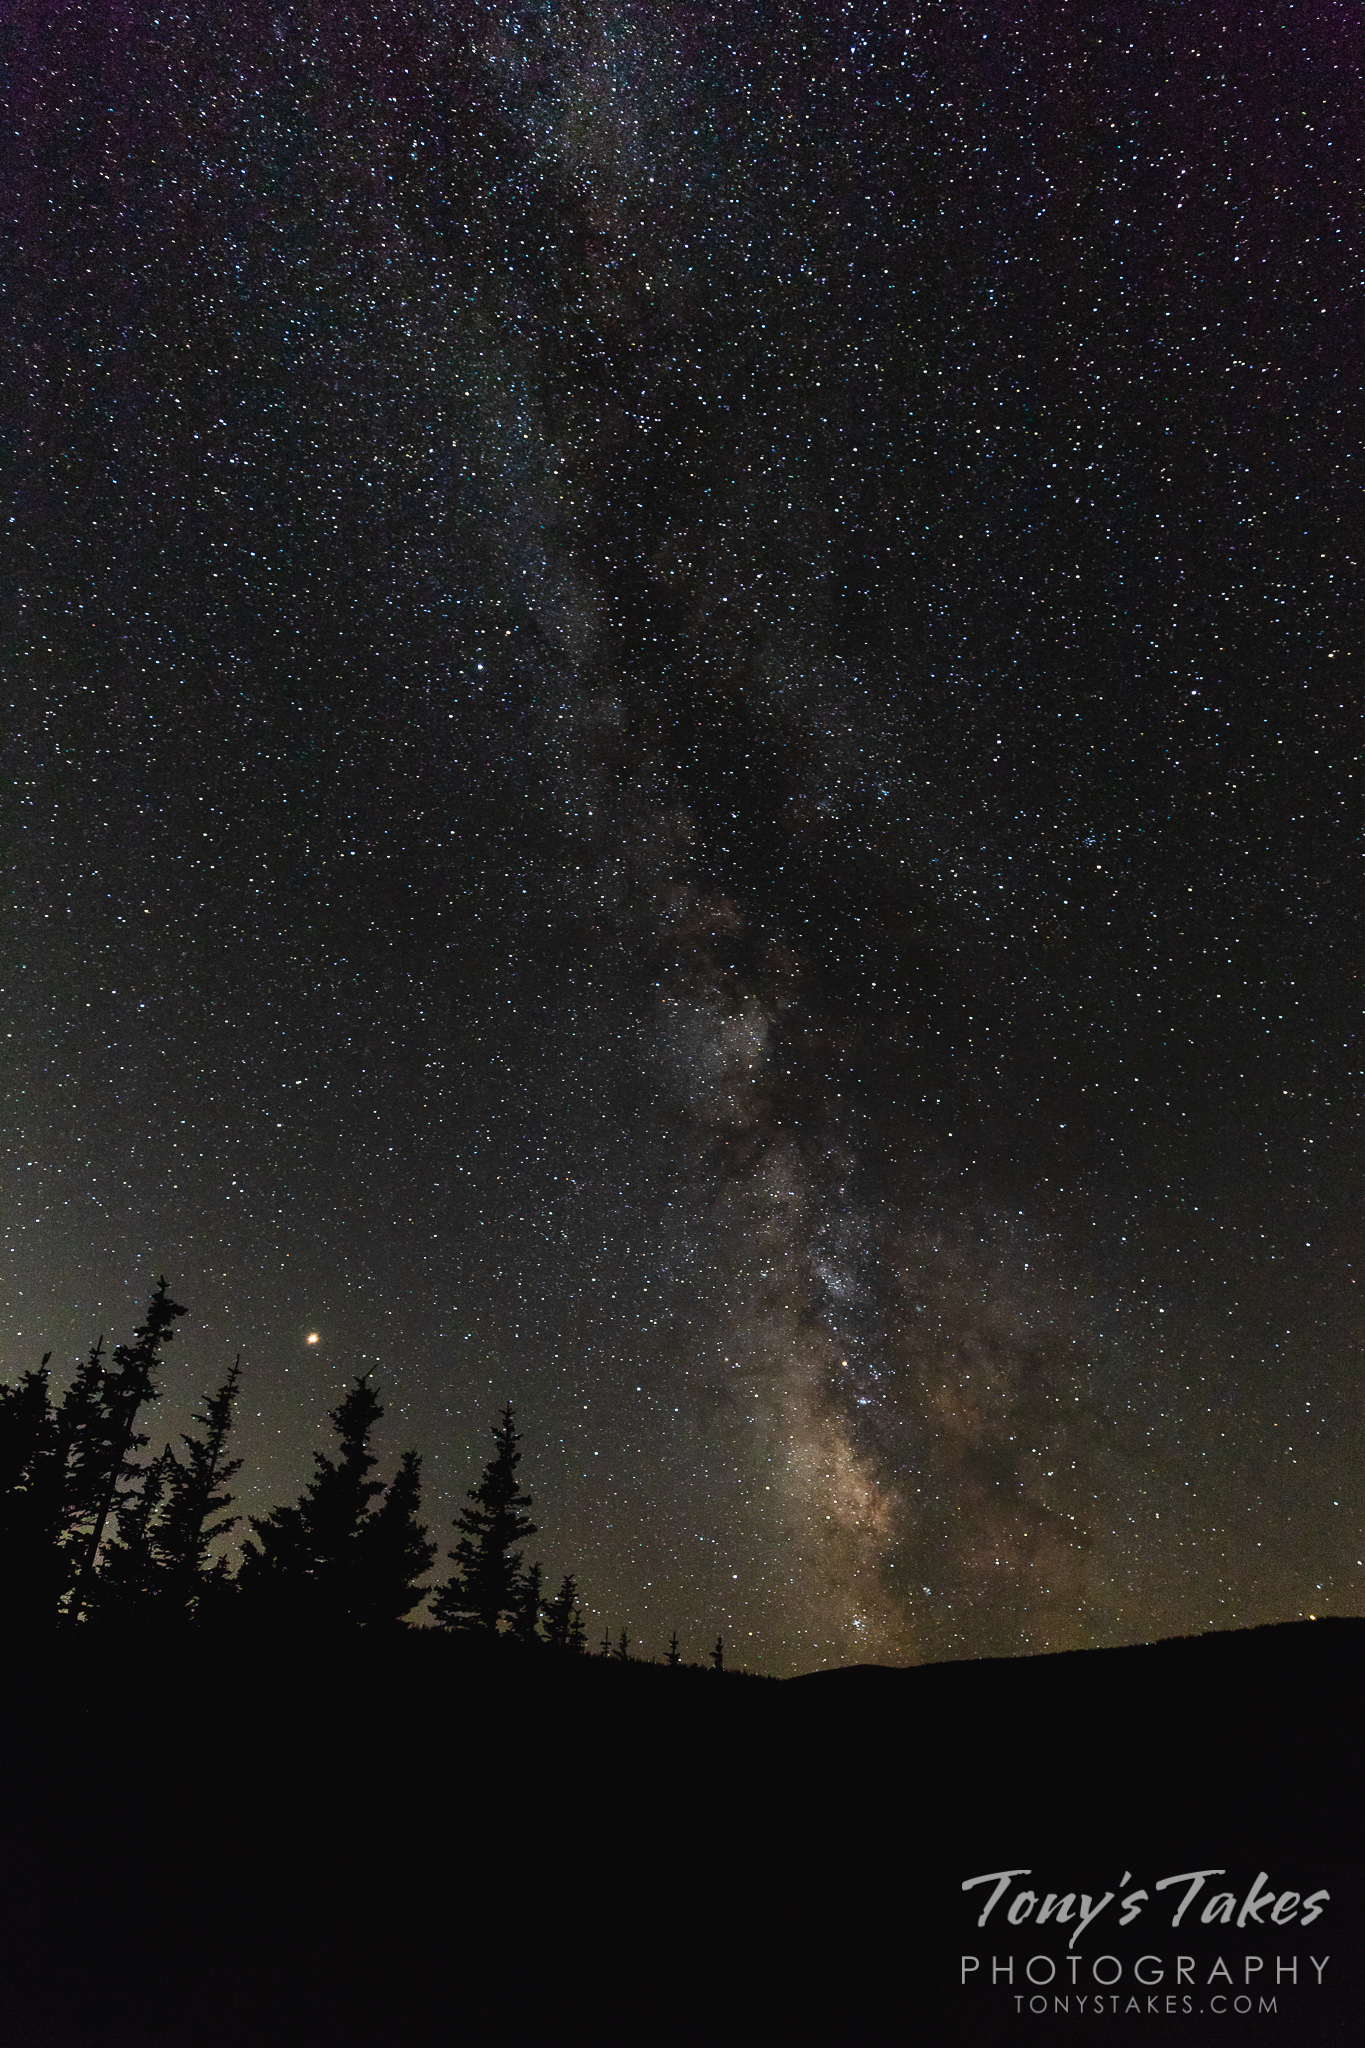 Portrait of the Milky Way galaxy as seen from Brainard Lake, Colorado. (© Tony's Takes)